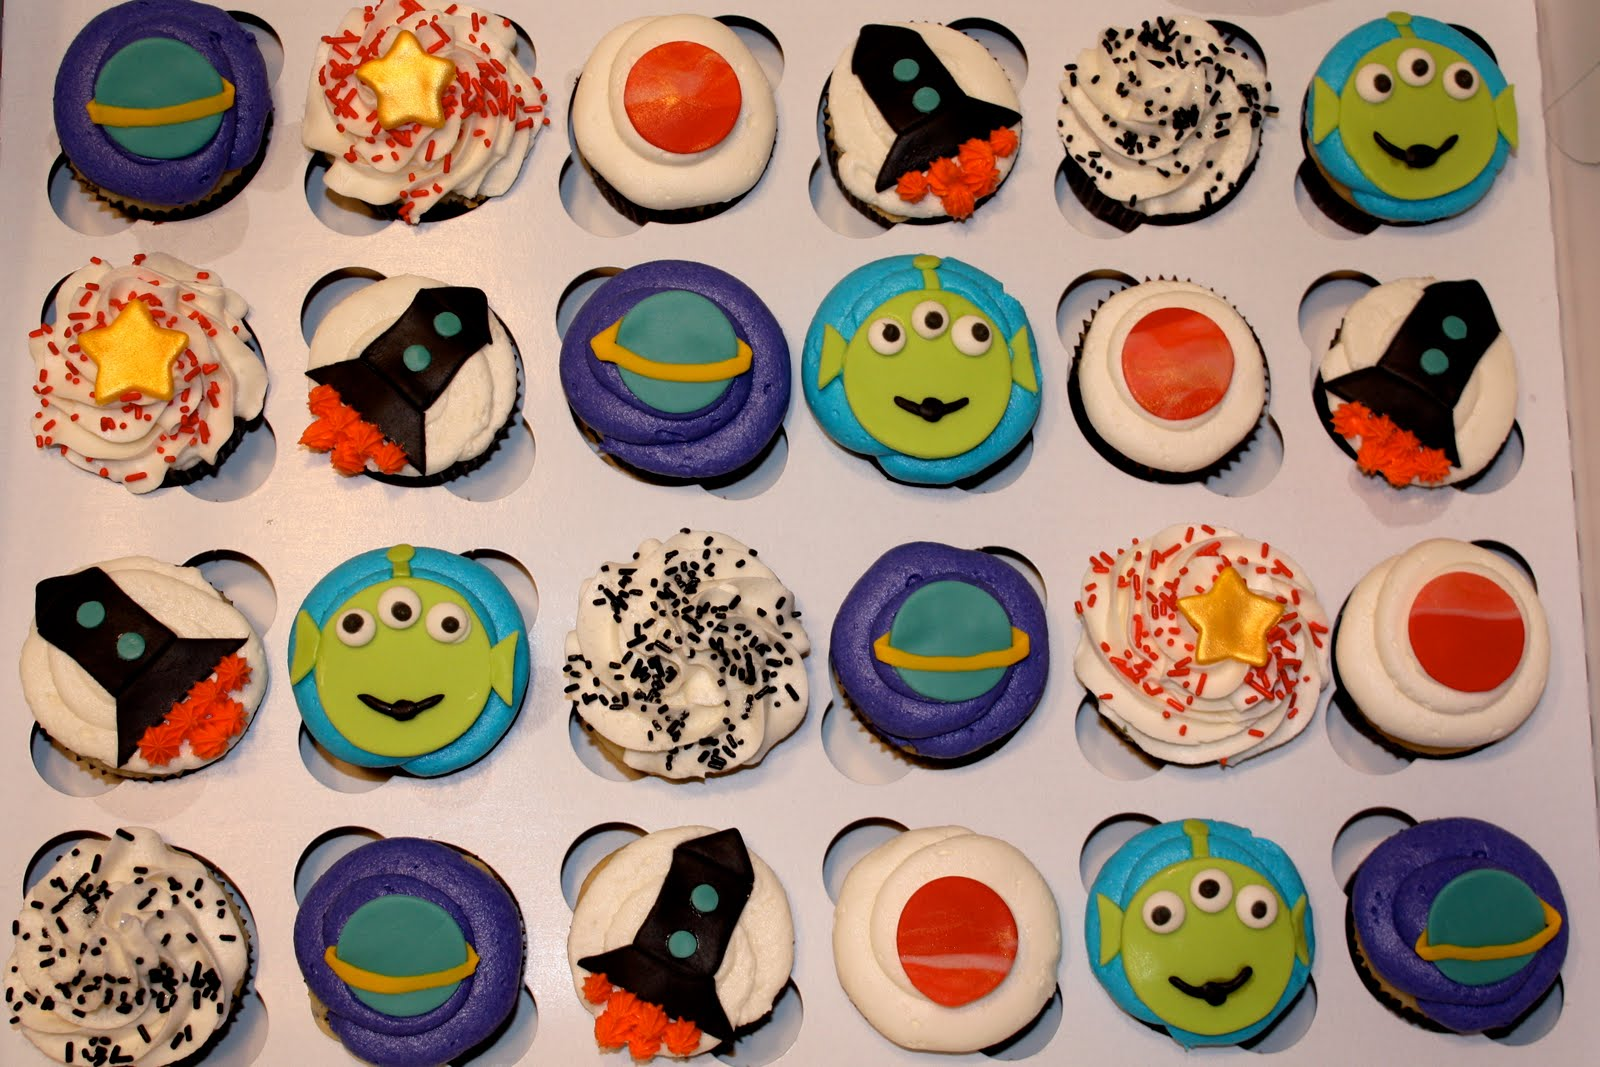 Bumble Cakes Buzz Lightyear Cupcakes And Cake